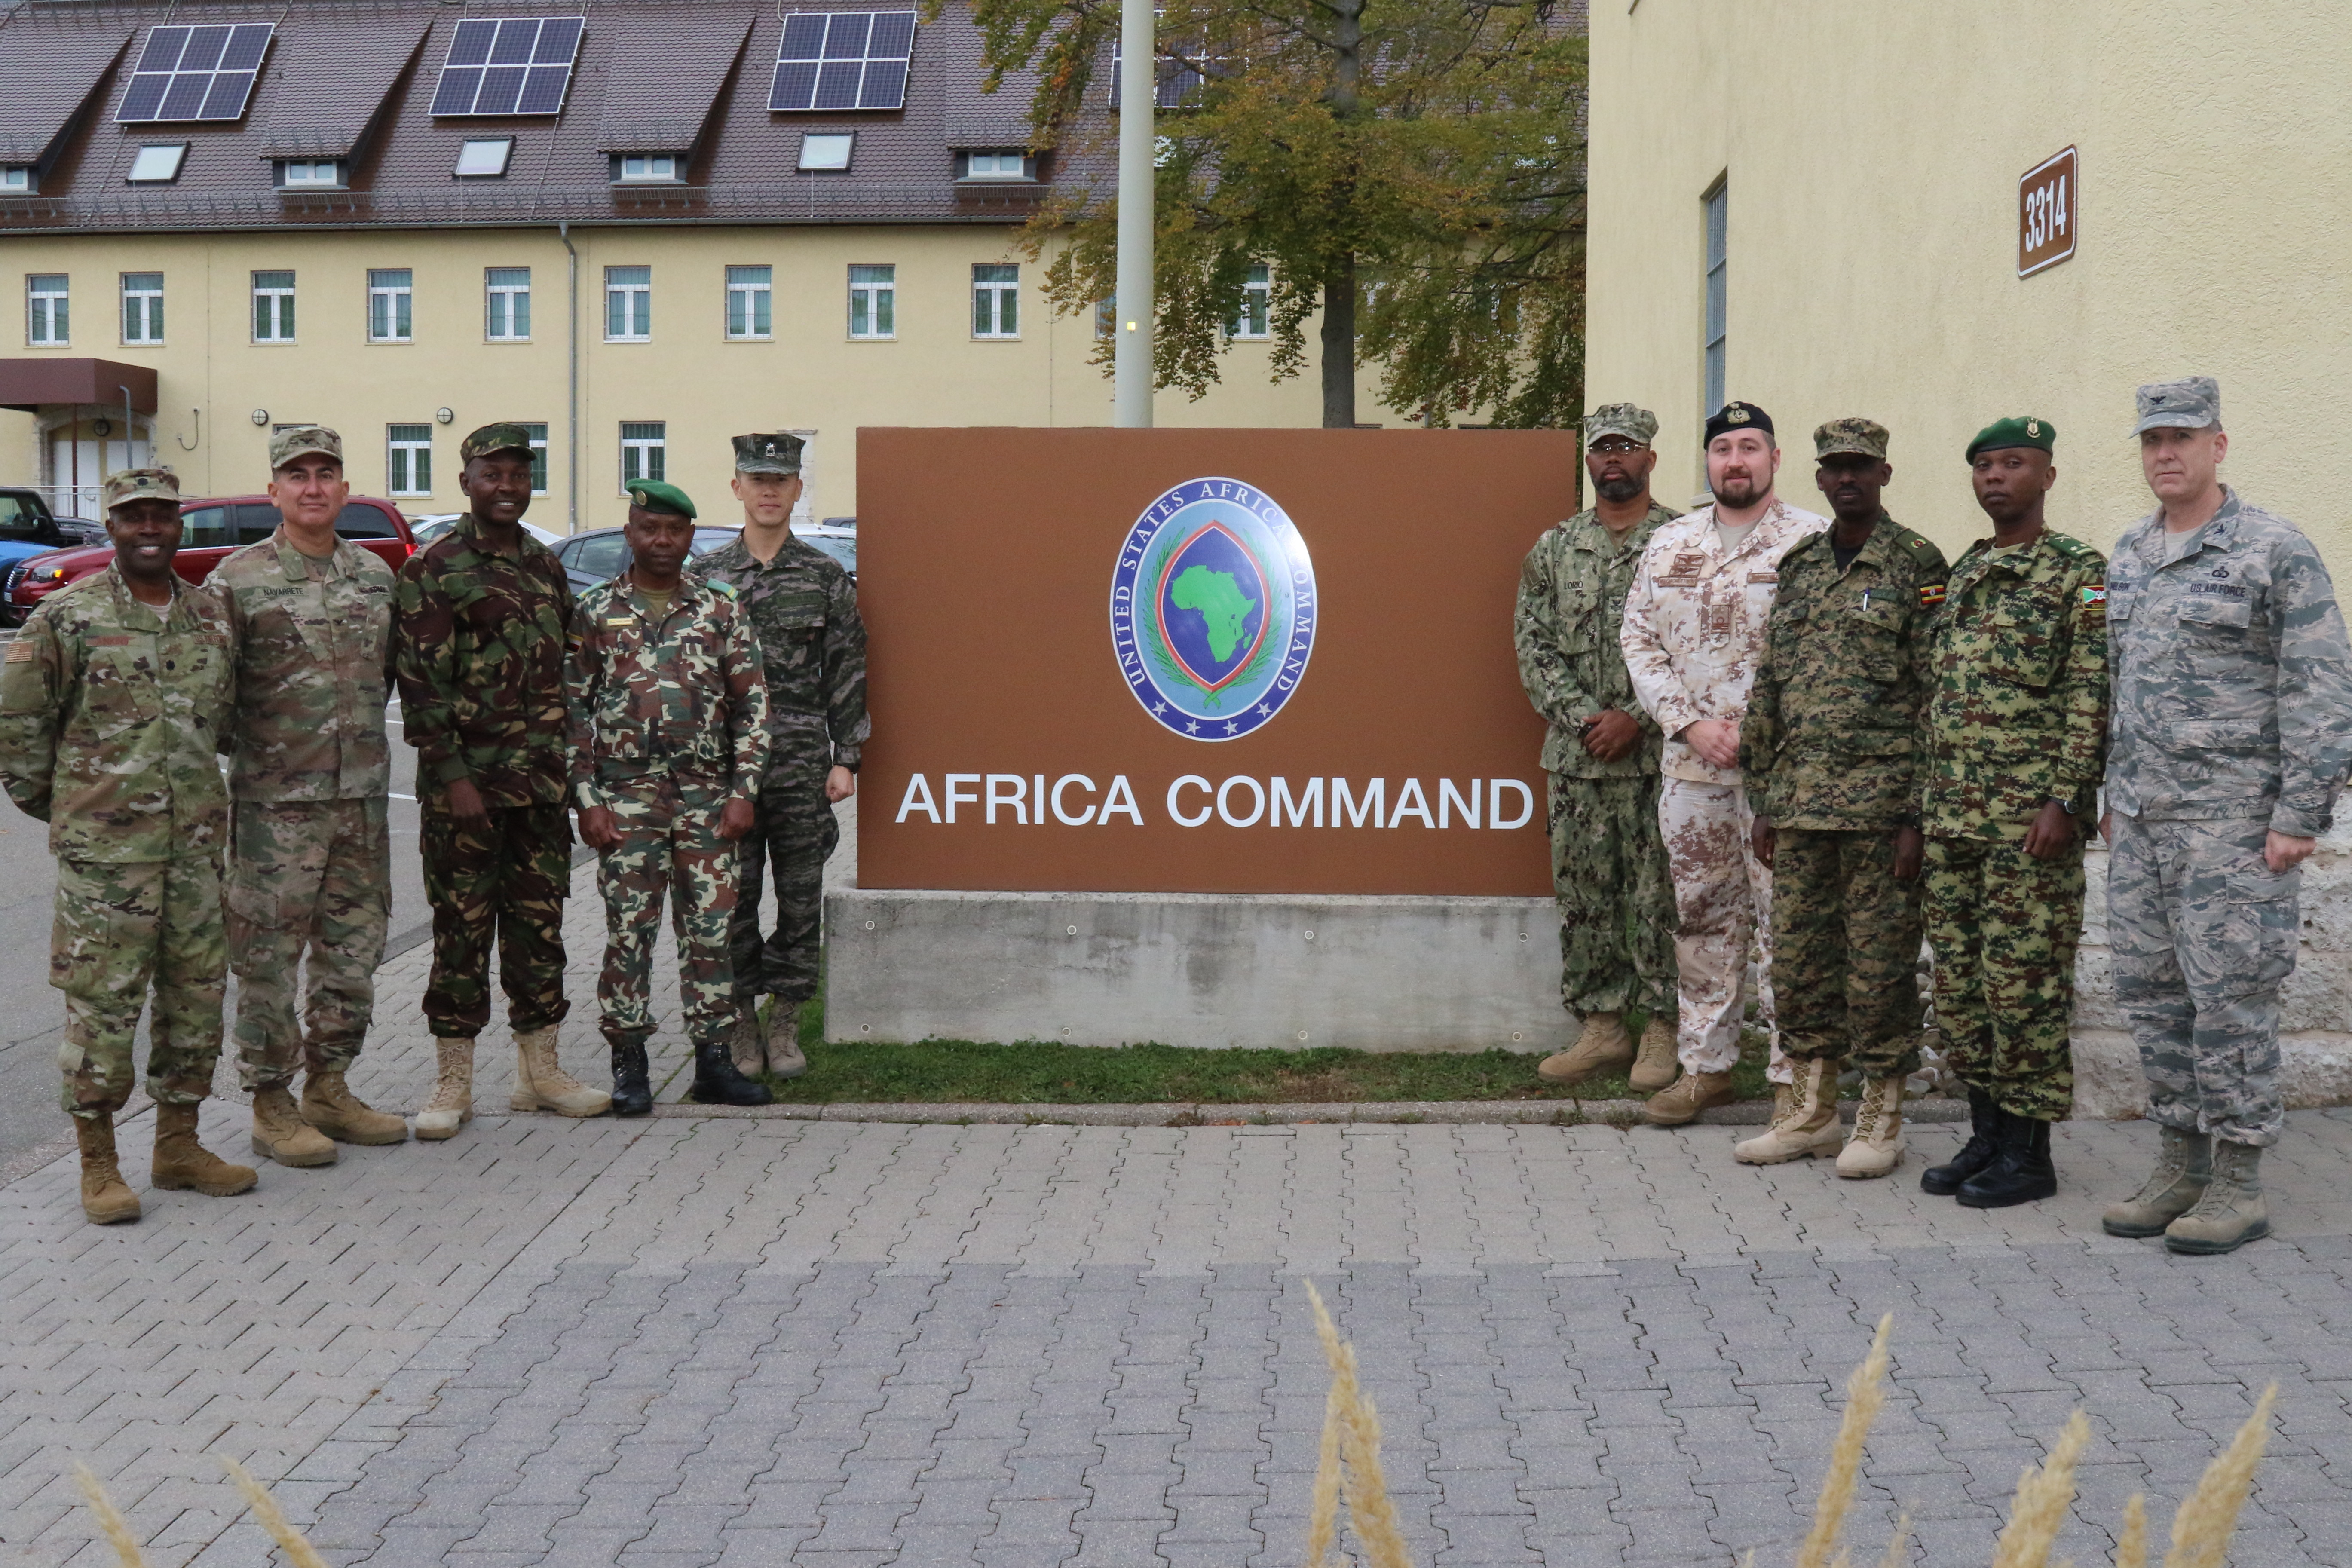 Foreign liaison officers assigned to Combined Joint Task Force - Horn of Africa visited U.S. Africa Command headquarters in Stuttgart, Germany Oct. 30-31, 2018. During the visit, they met with AFRICOM staff and received briefings about the command.